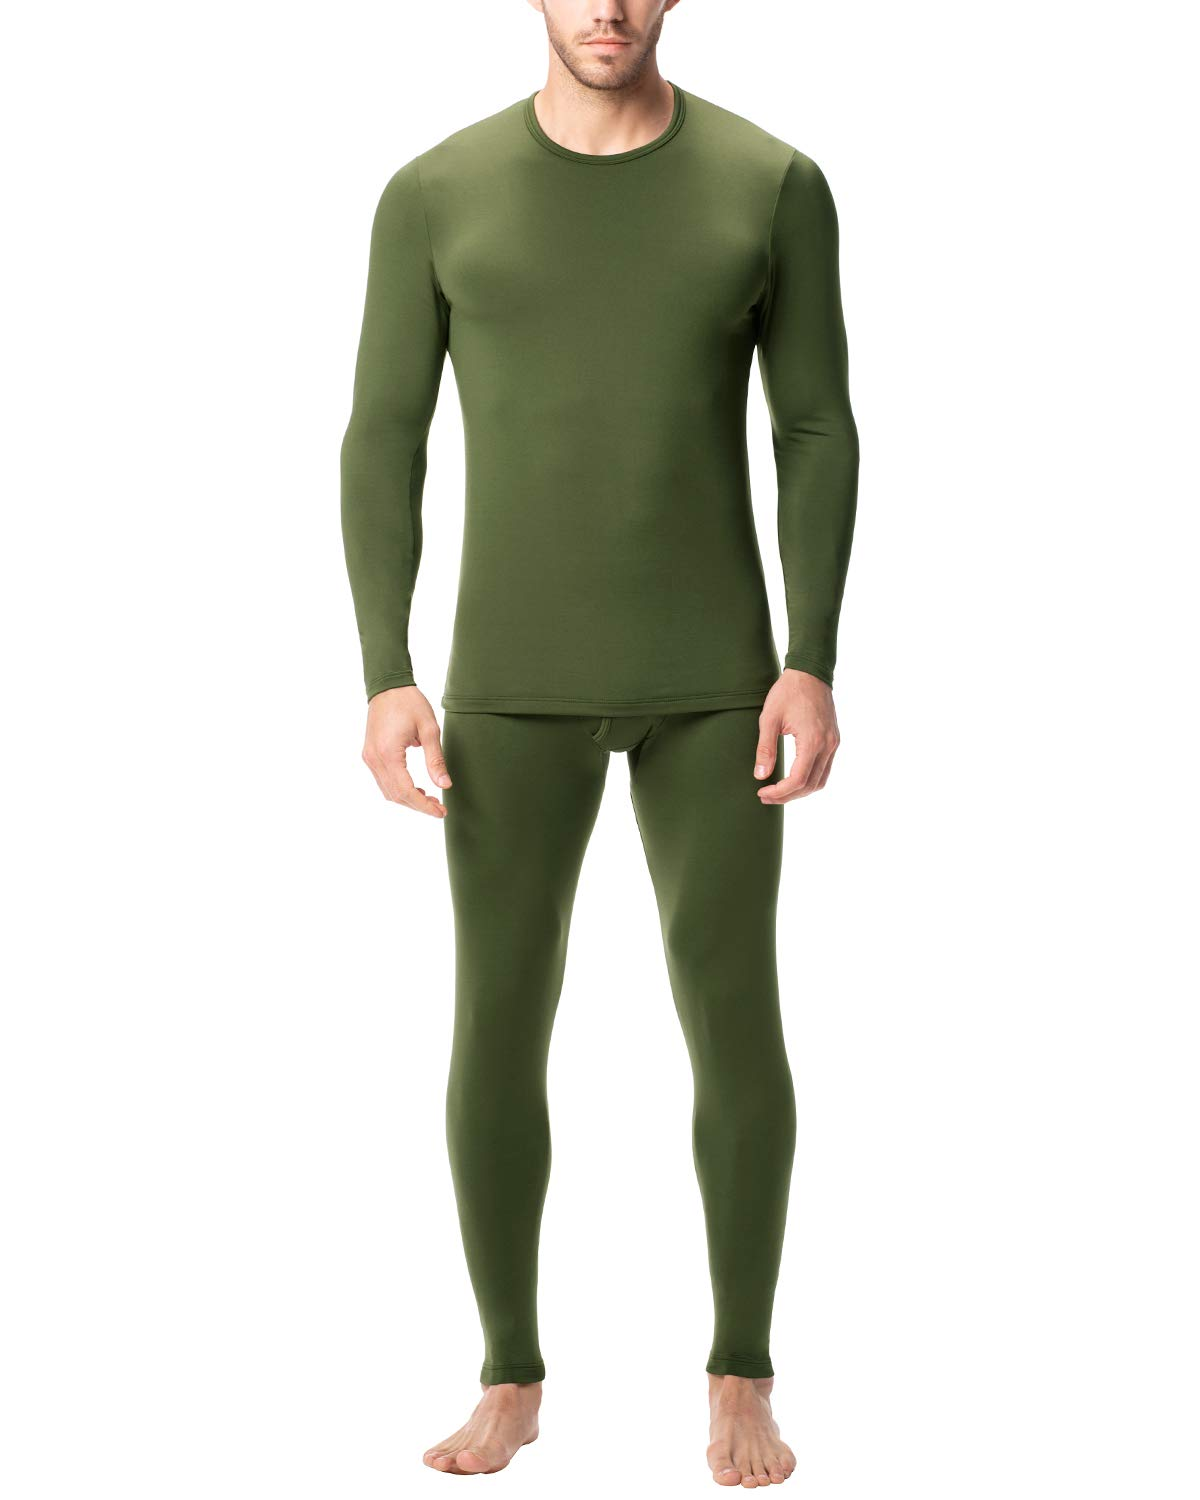 LAPASA Men's Lightweight Thermal Underwear Long John Set Fleece Lined Base Layer Top and Bottom M11 (XX-Large, Lightweight Olive) by LAPASA